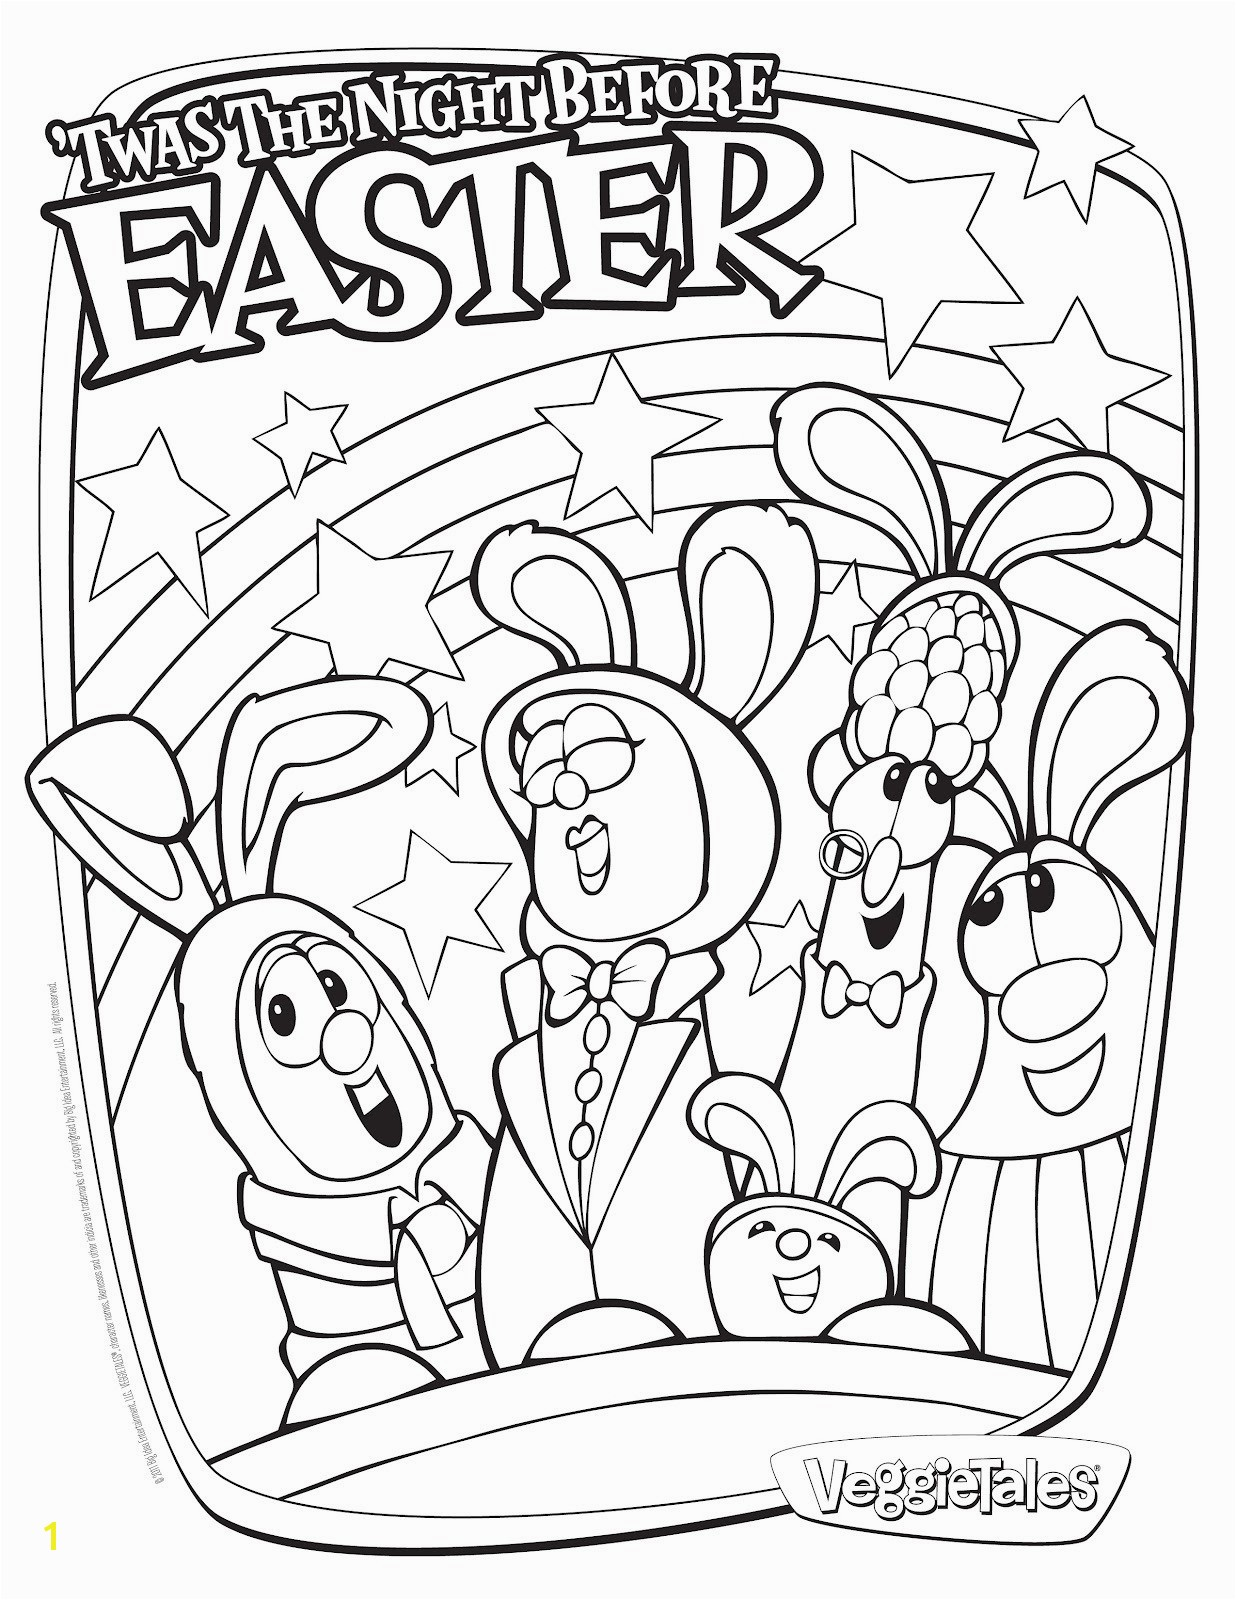 Elmo Coloring Pages Elmo Coloring Pages Printable Free New Coloring Sheets For Toddlers